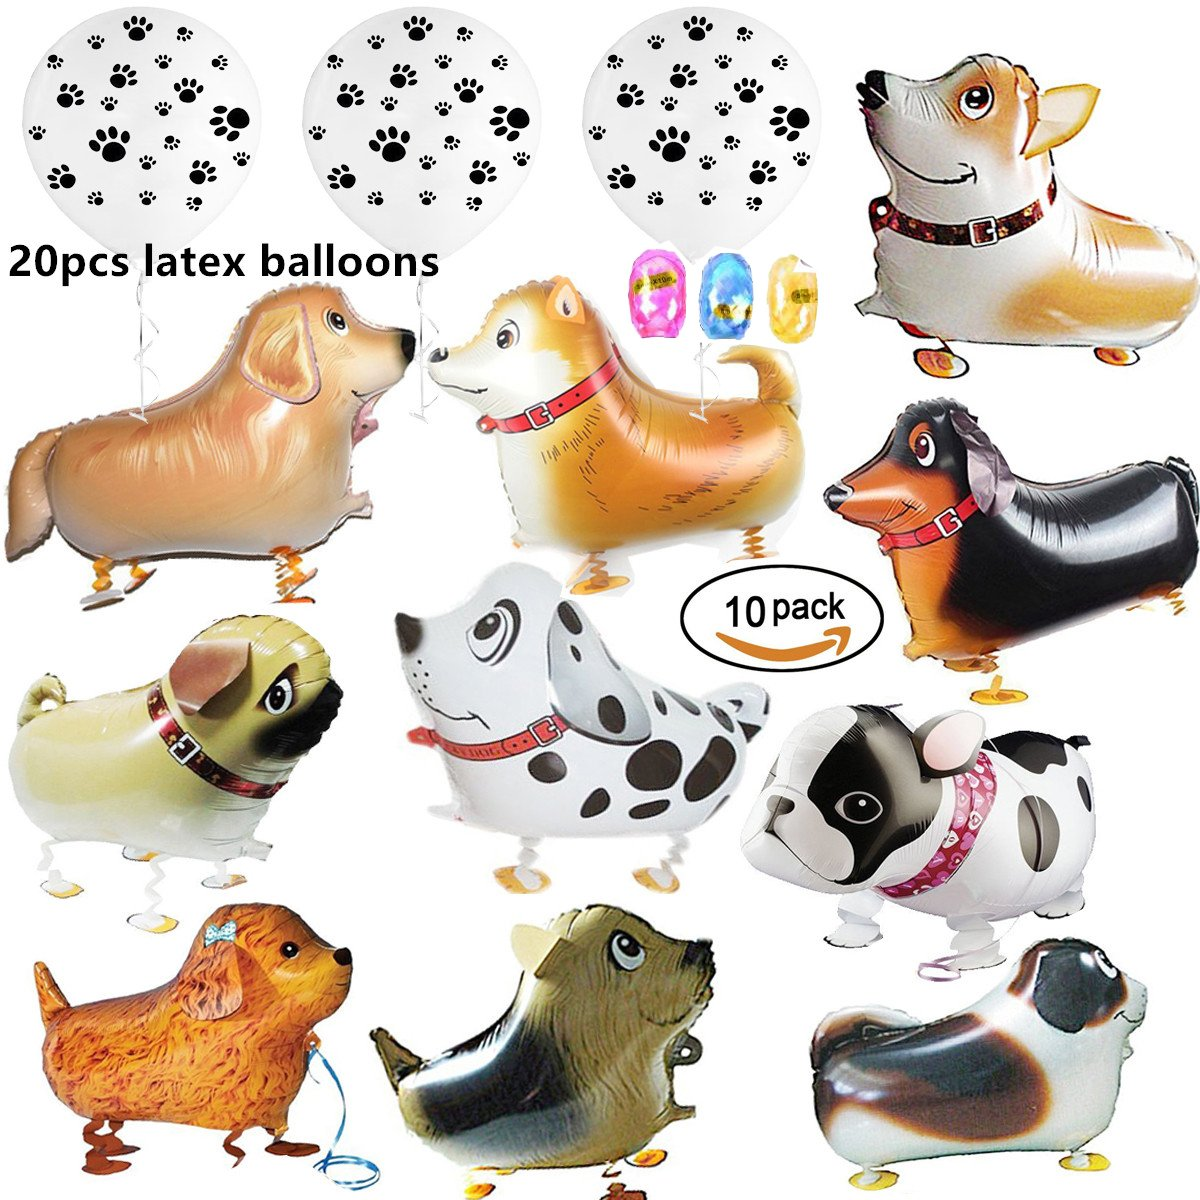 30 Pcs Including 10 pcs Walking Animal Balloons Pet Dog Balloons and 20pcs 12 inch Black Paw Prints Latex White Balloons Dog Balloon Toys Air Walkers For Kids Gift Birthday Party Decor